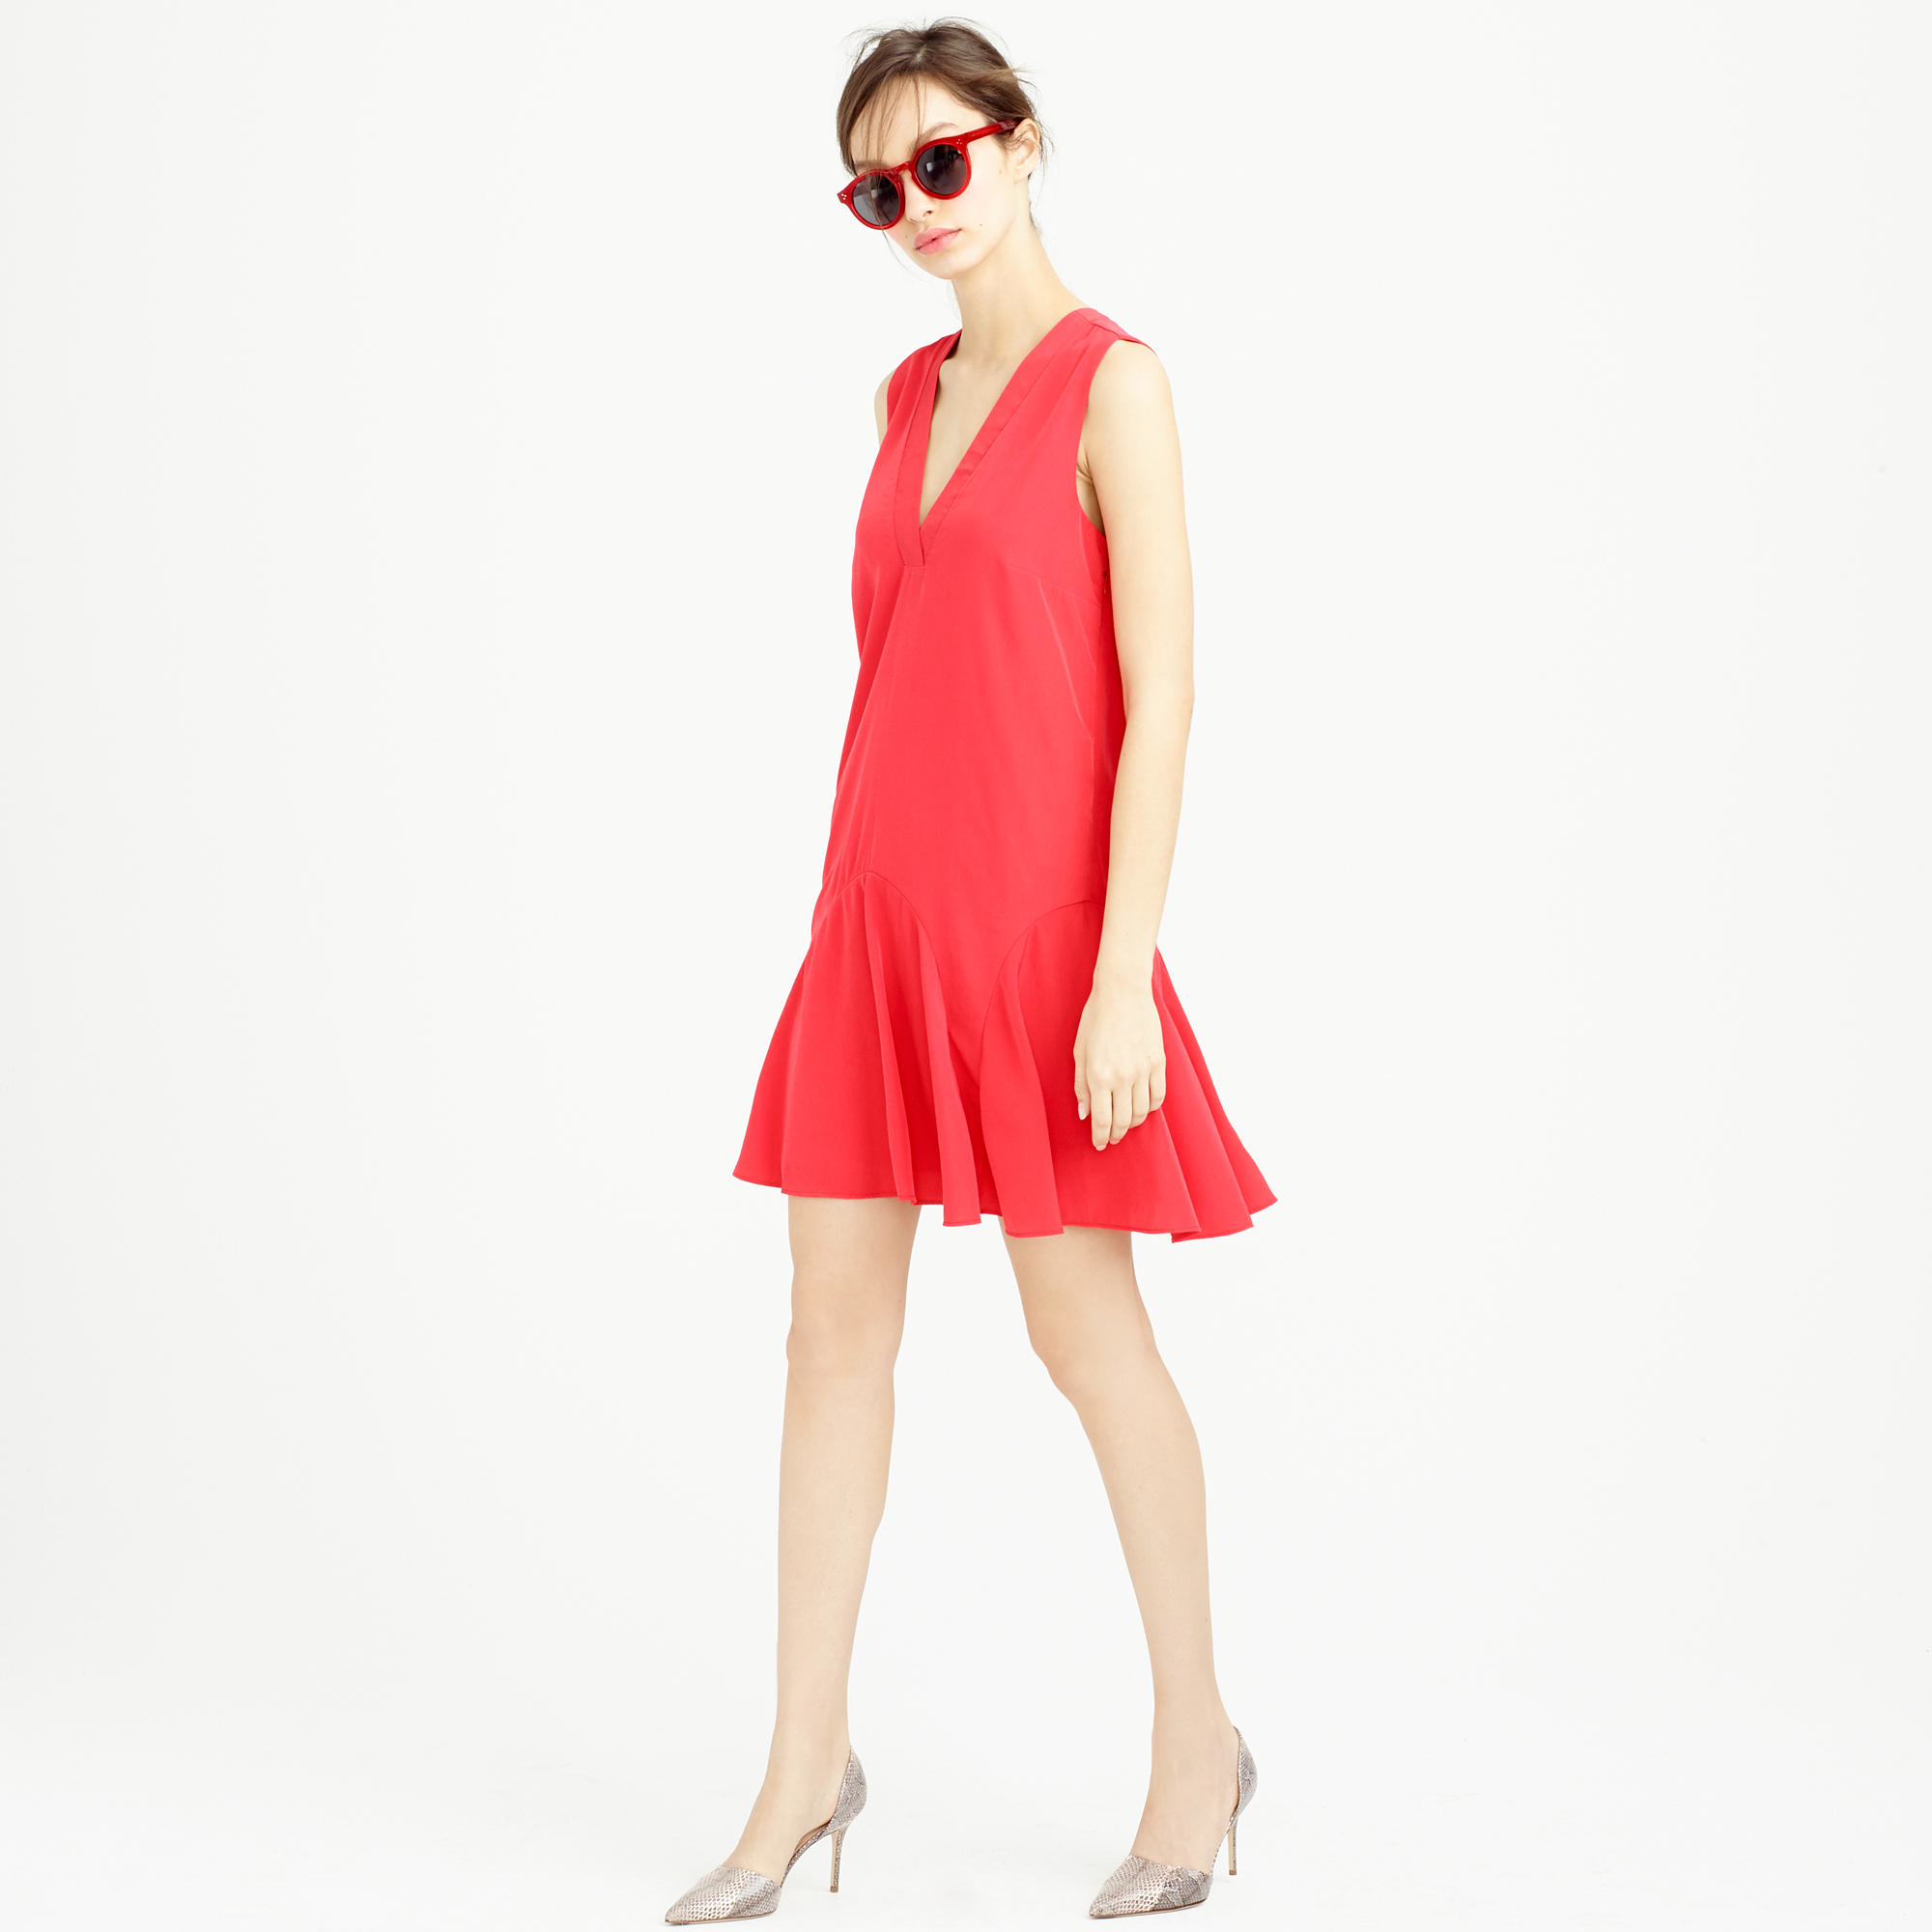 J Crew Sleeveless Flounce Dress In Red Belvedere Red Lyst